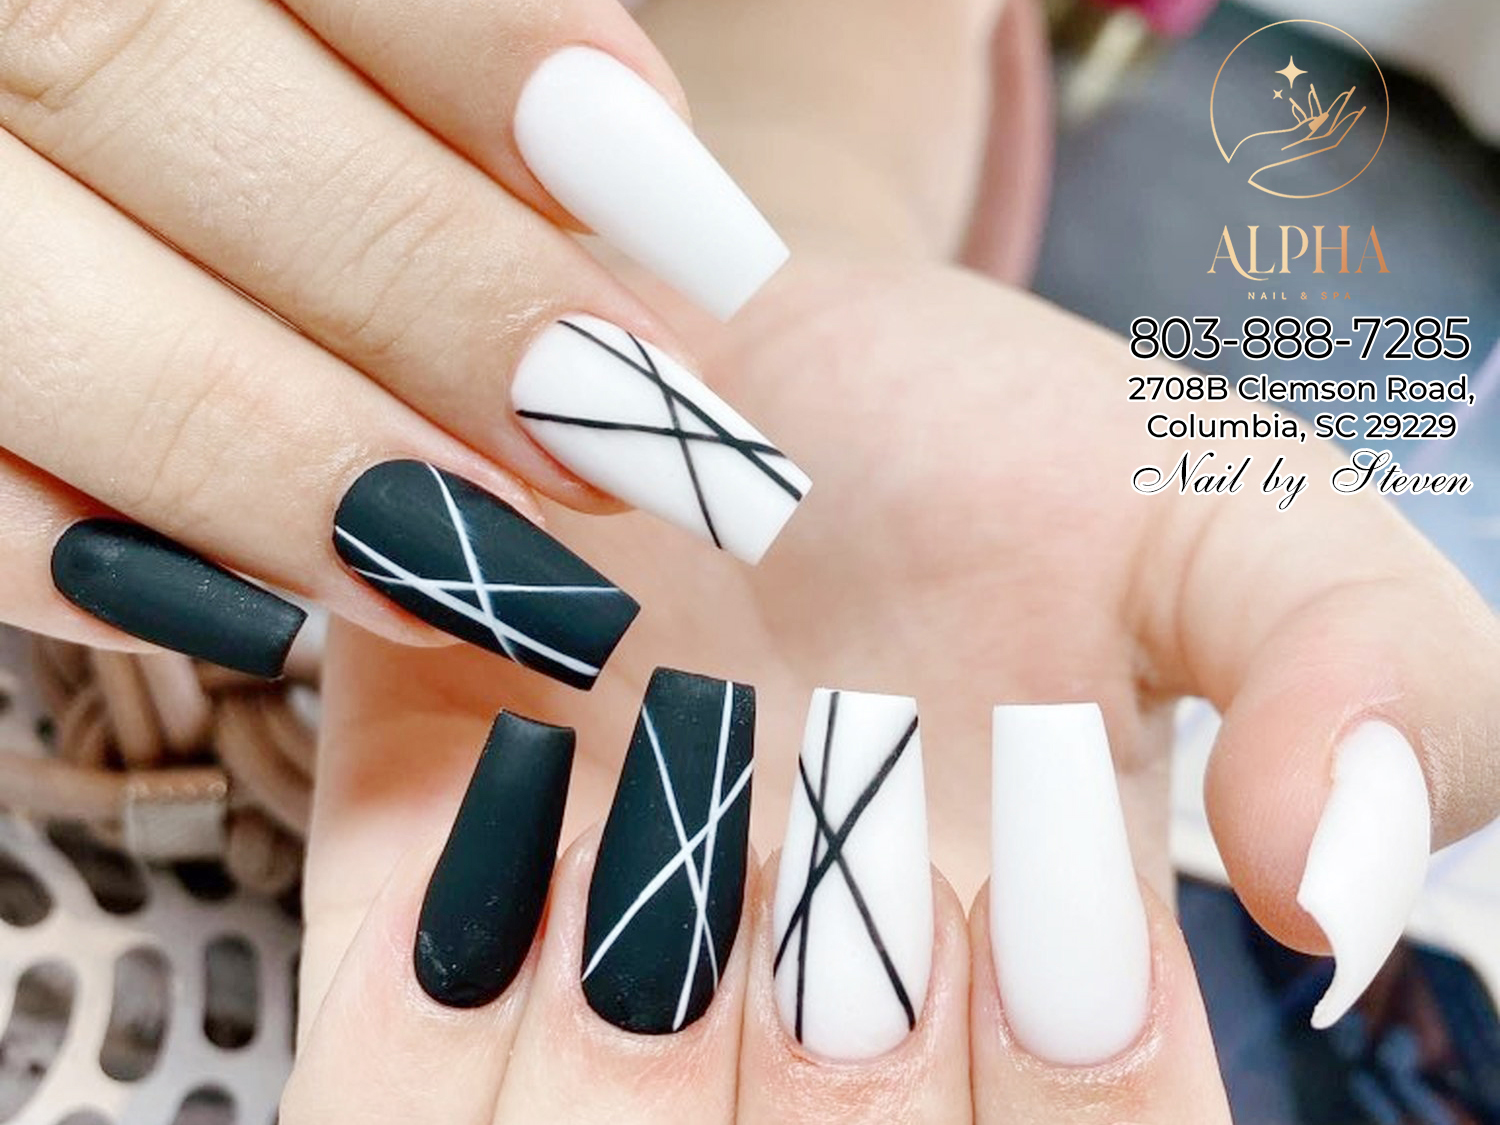 Check out some chic nail designs from our best nail experts Alpha Nails & Spa